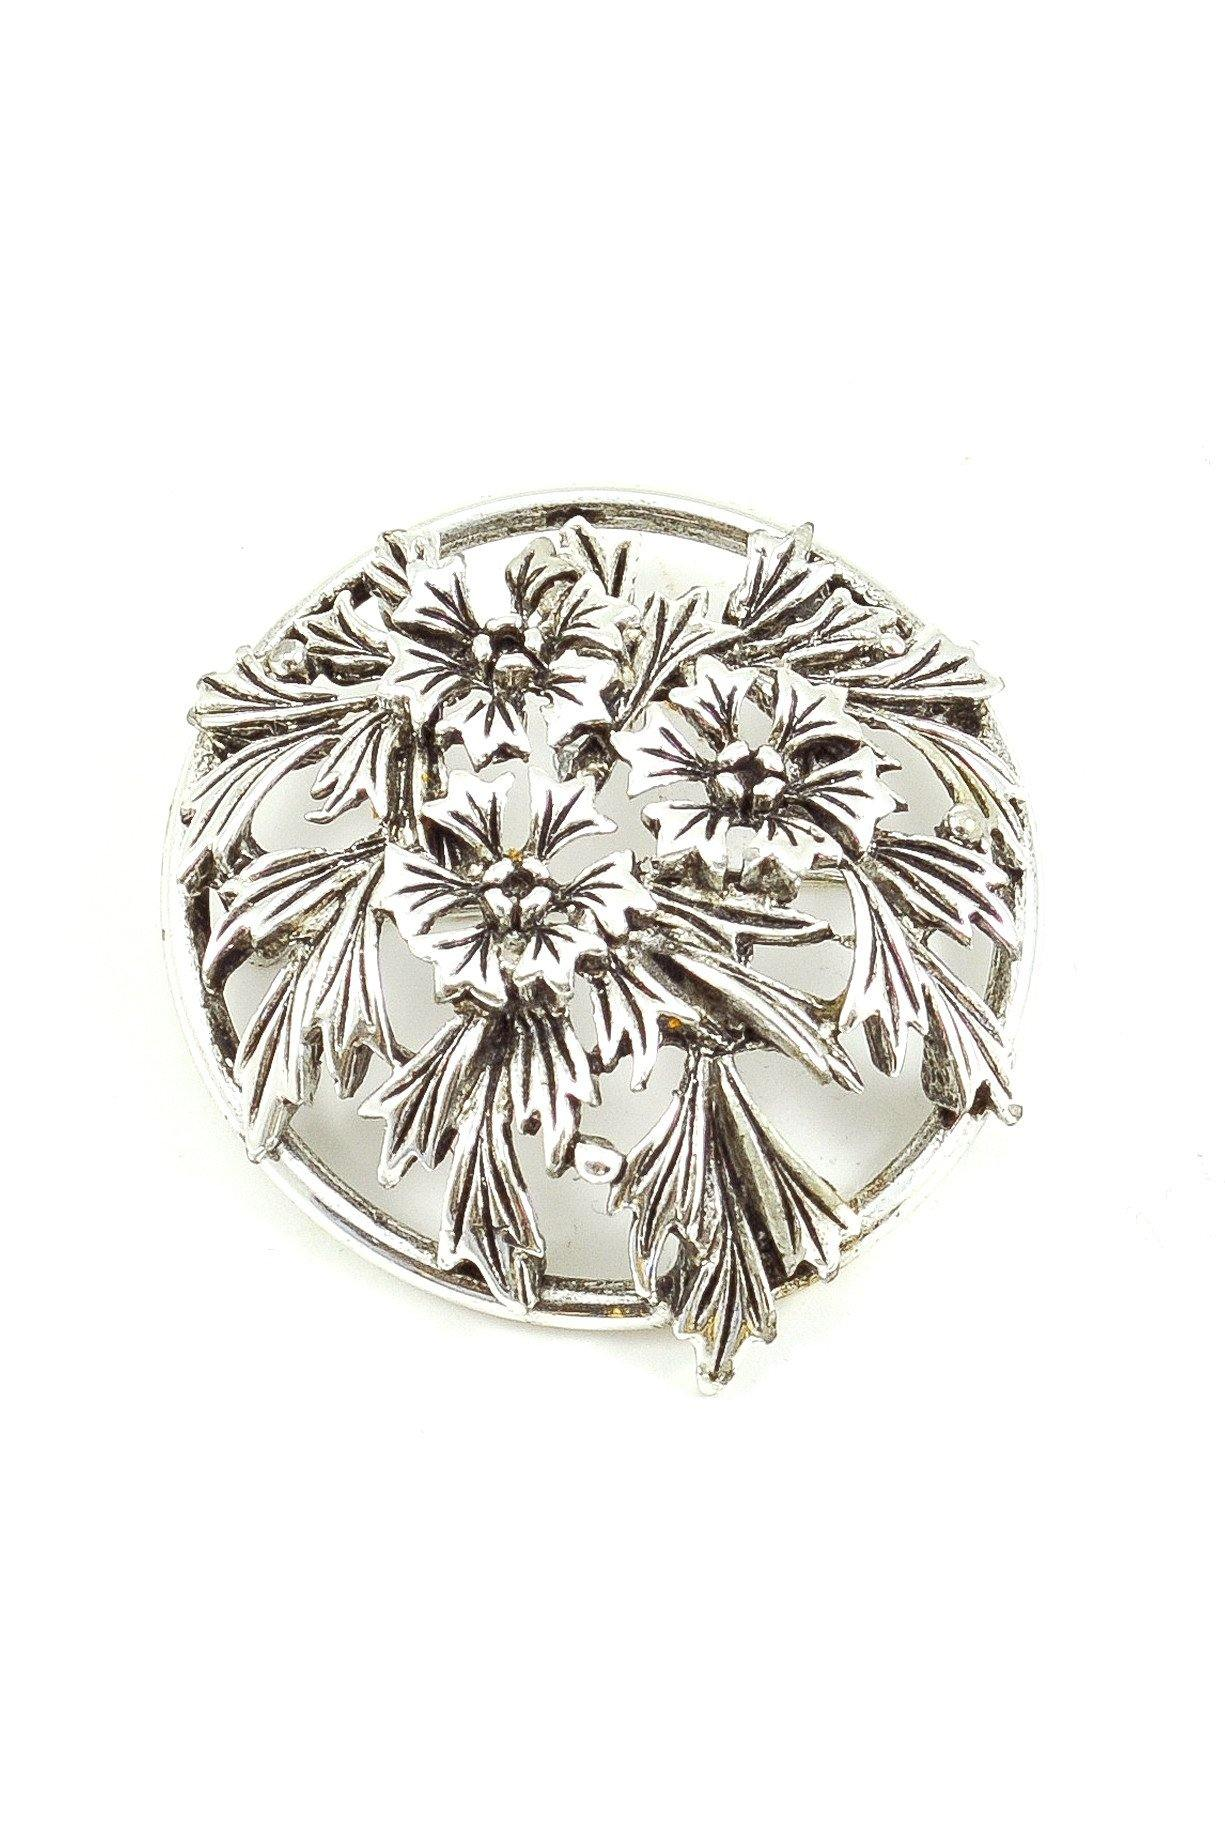 60s__Judy Lee__Silver Floral Brooch